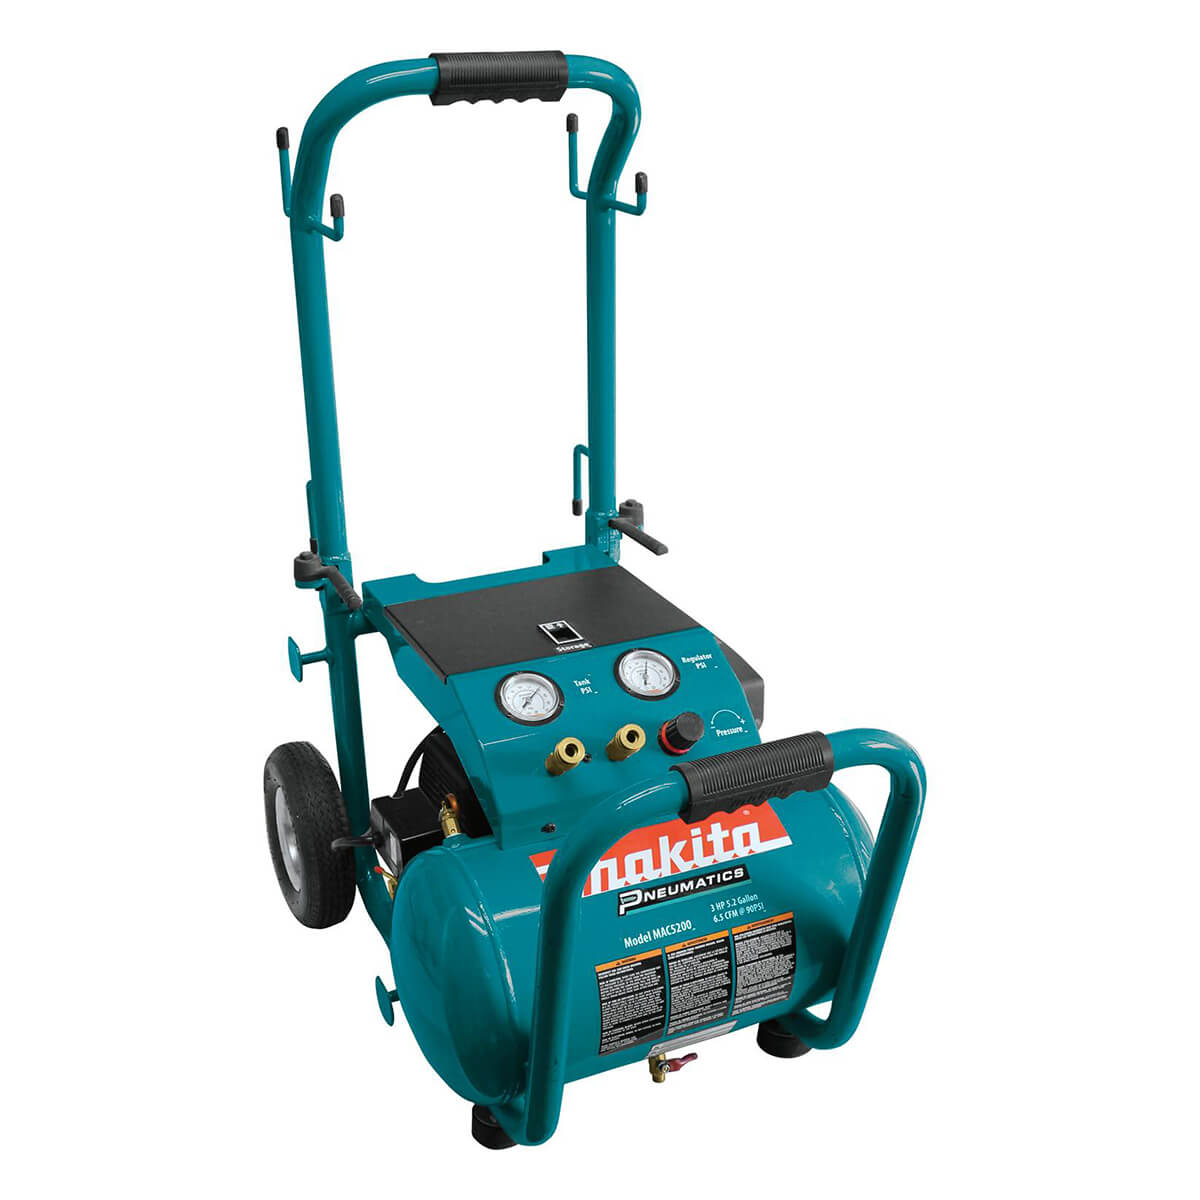 Makita MAC5200 Big Bore Air Compressor - 3.0 hp